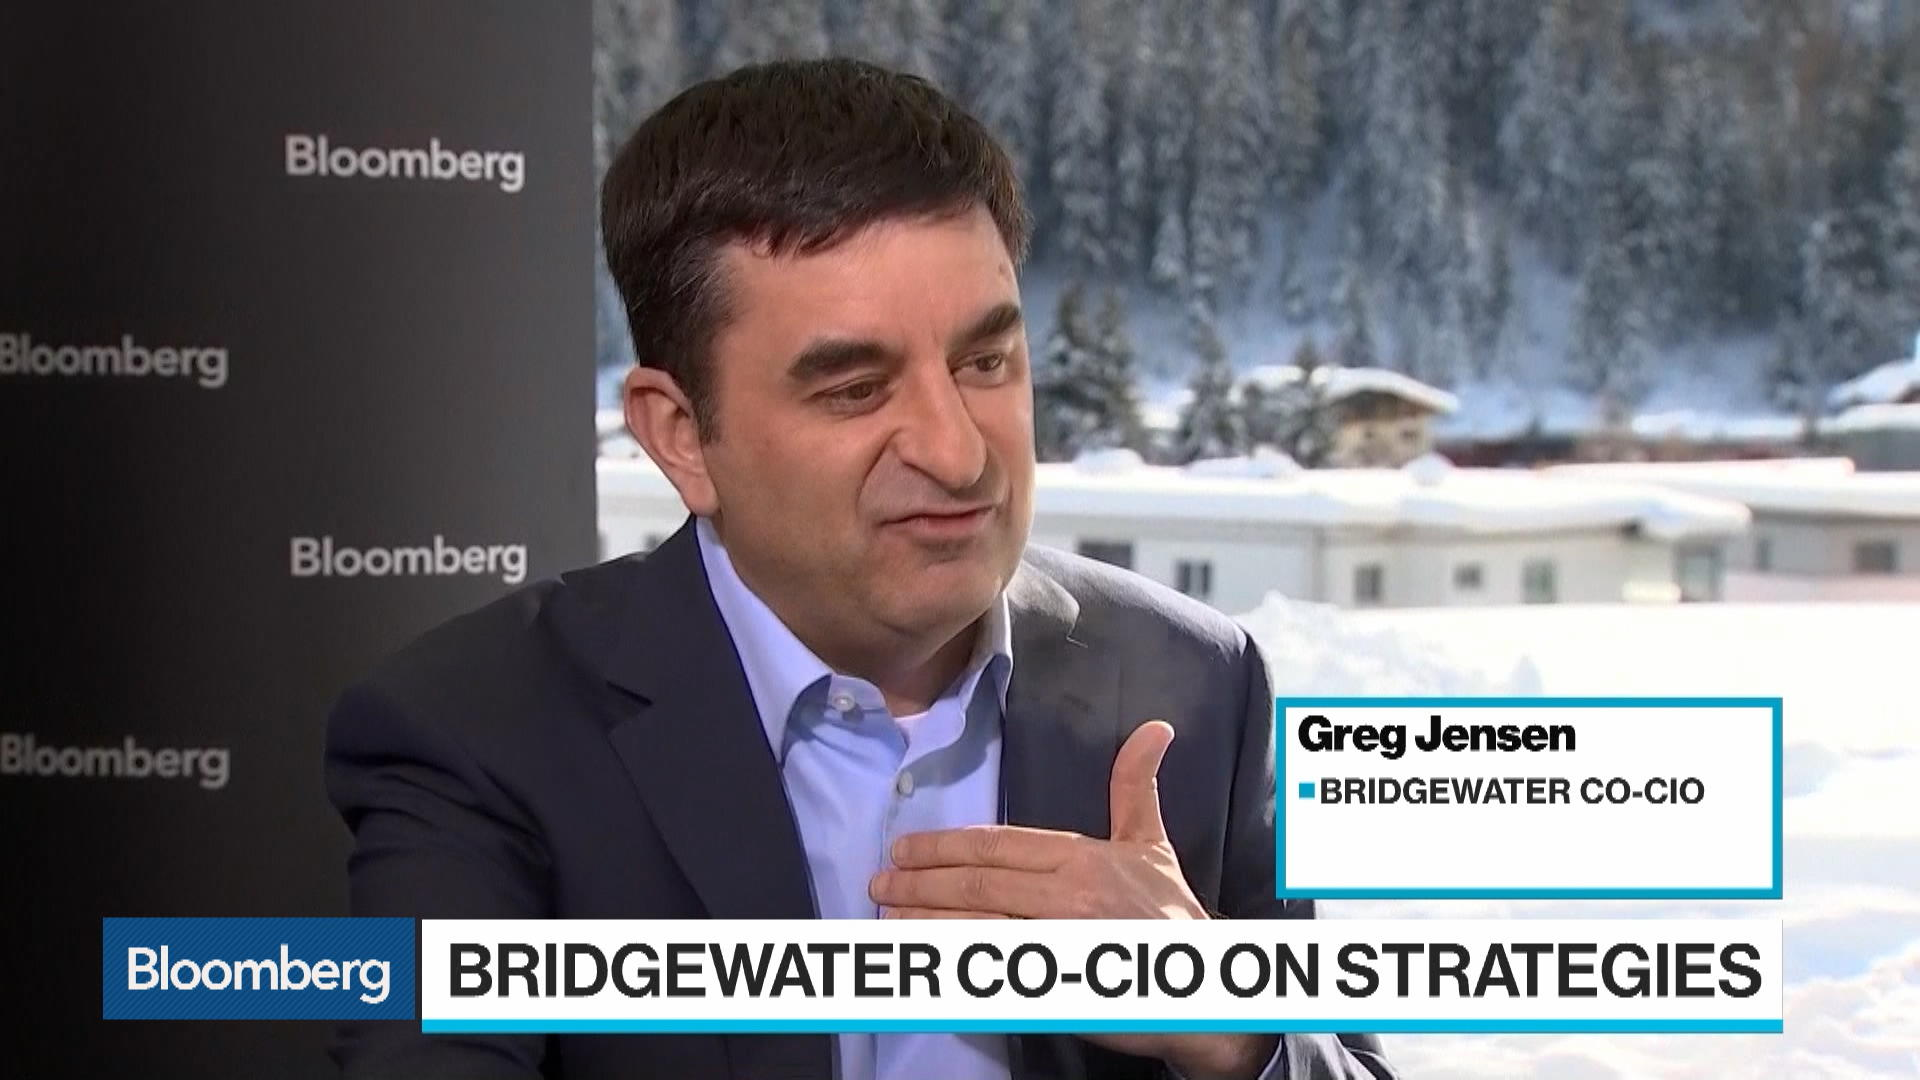 Bridgewater's Greg Jensen Says Markets Could Be Worse - Bloomberg